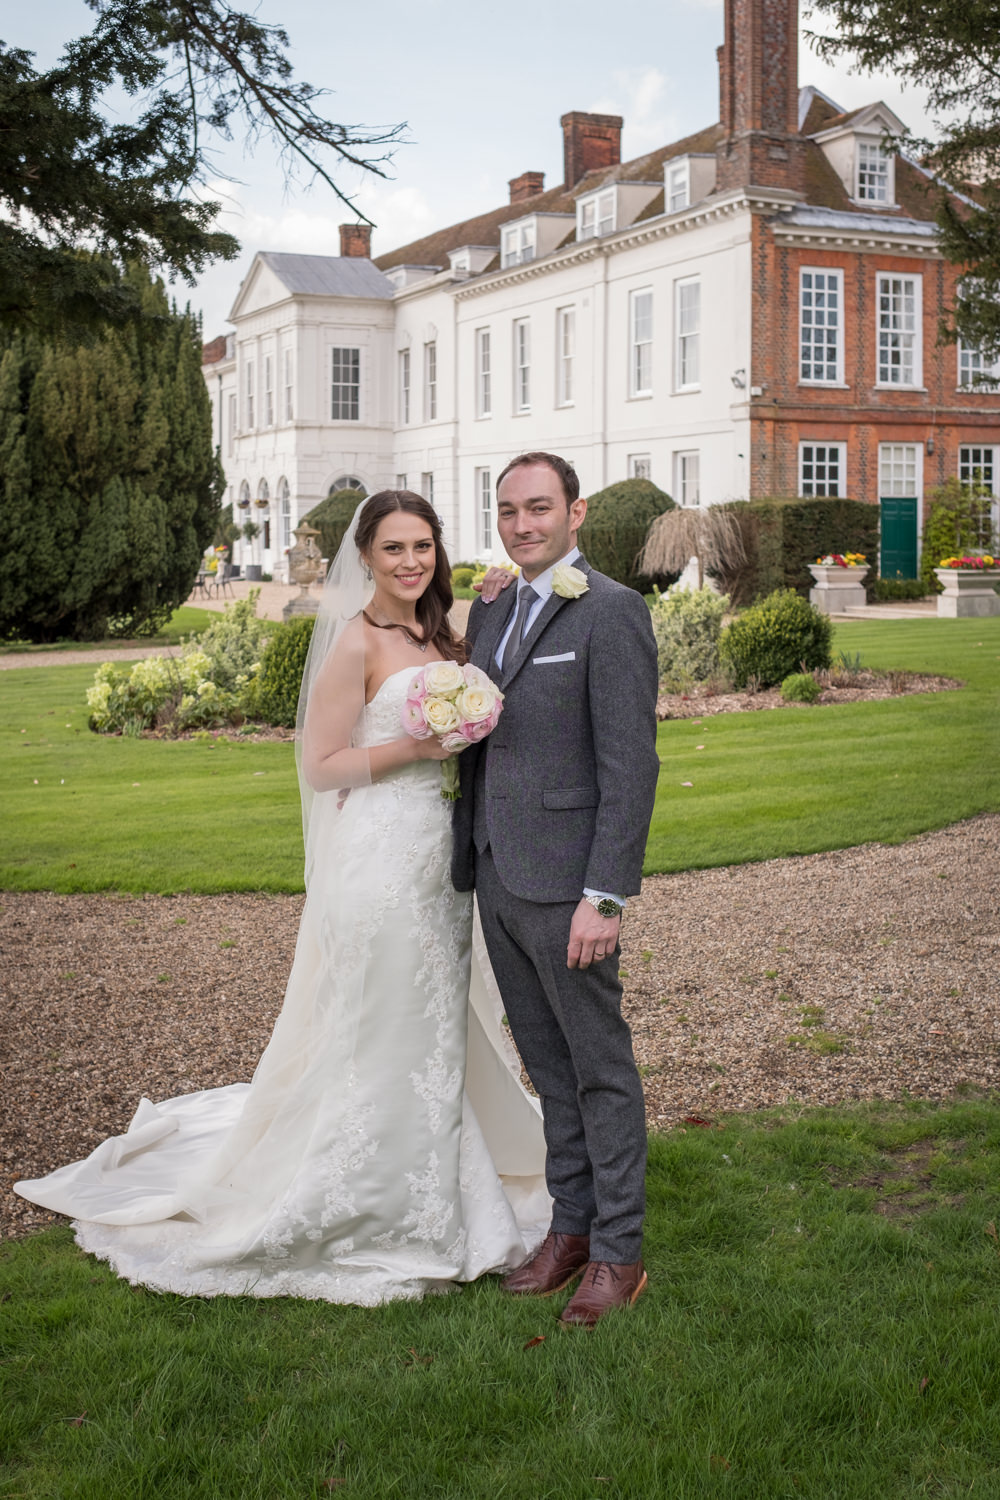 Gosfield Hall wedding photography, Essex wedding photographer, Wedding Photography